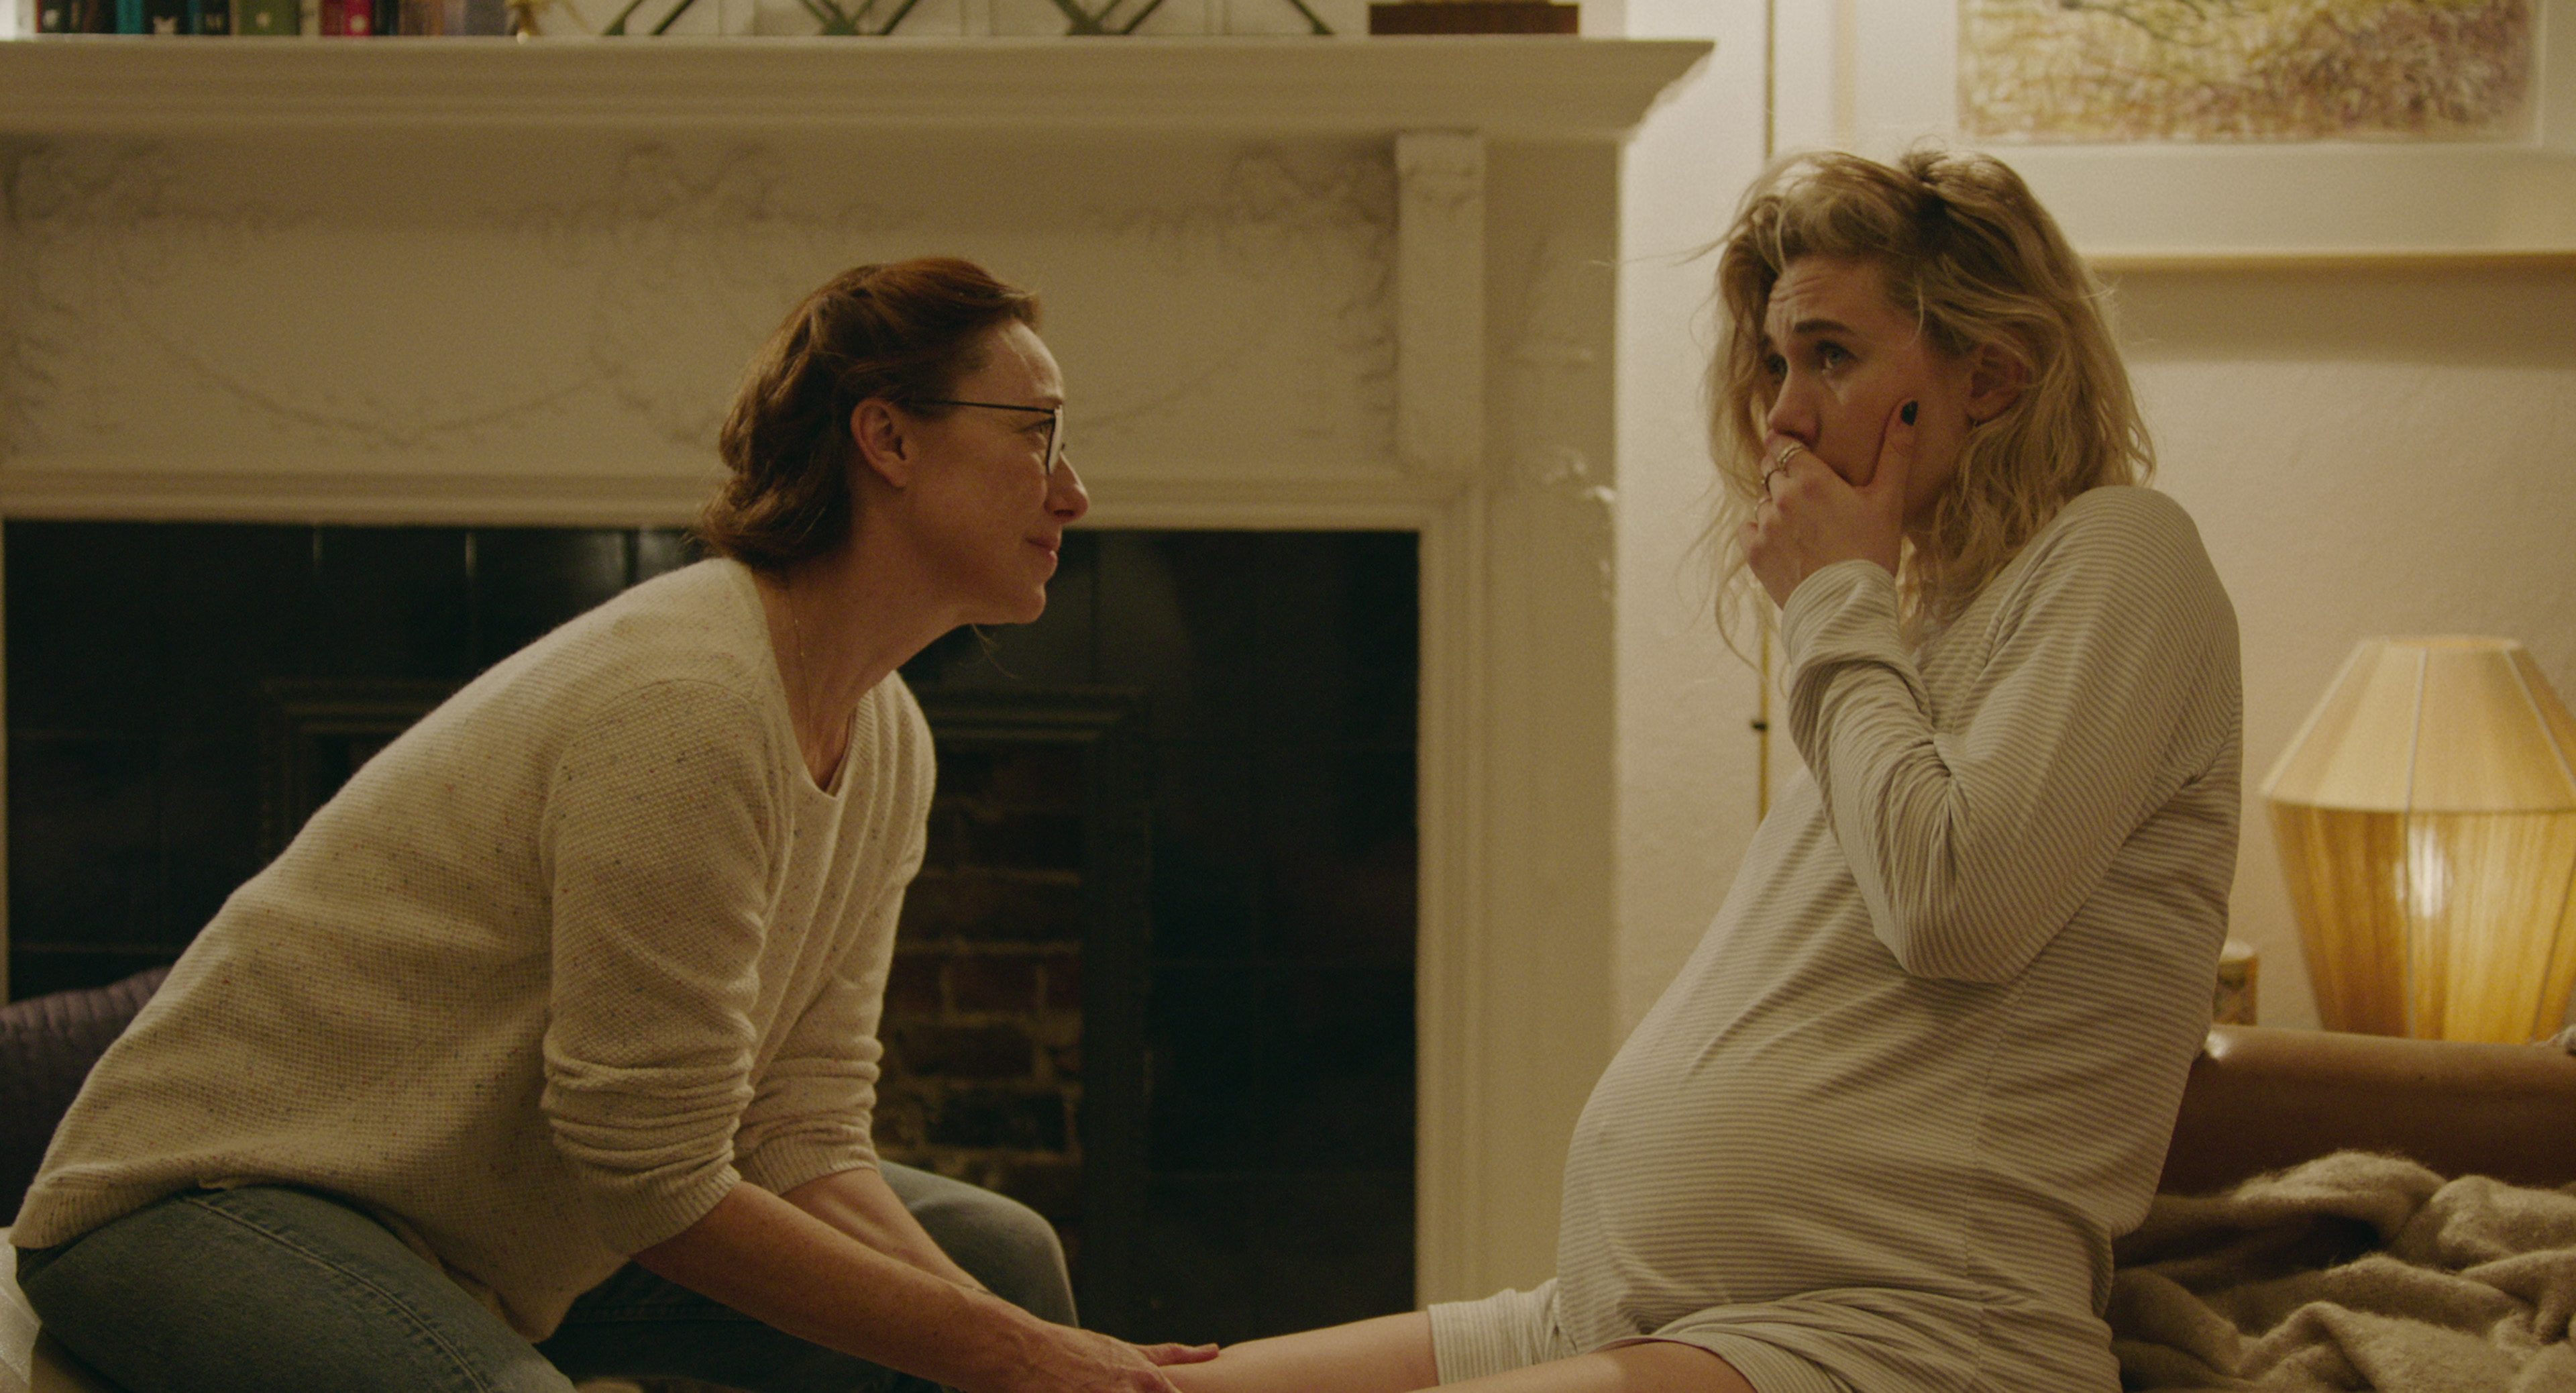 Molly Parker as the midwife Eva helps Vanessa Kirby's Martha through labor